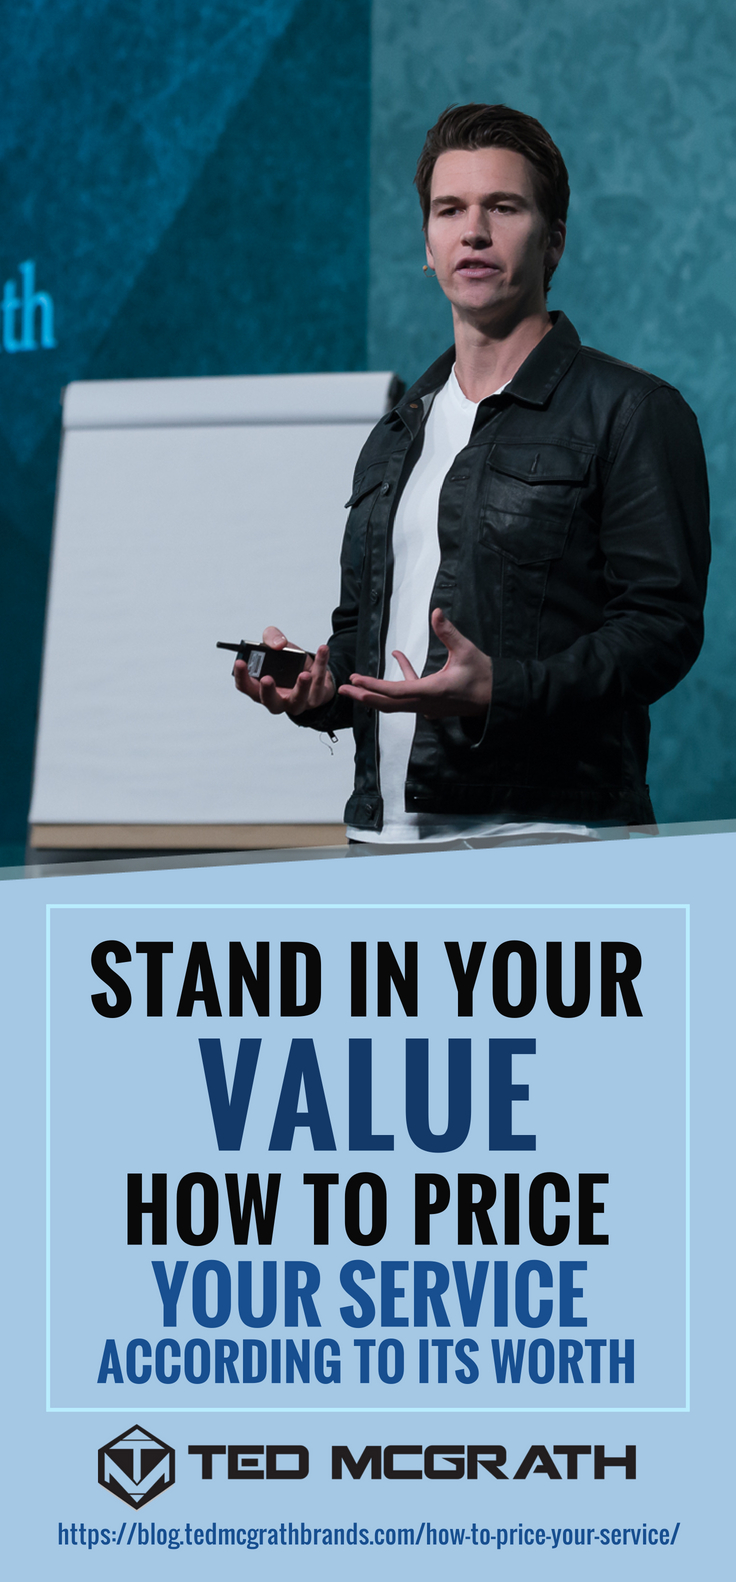 Stand In Your Value | How To Price Your Service According To Its Worth